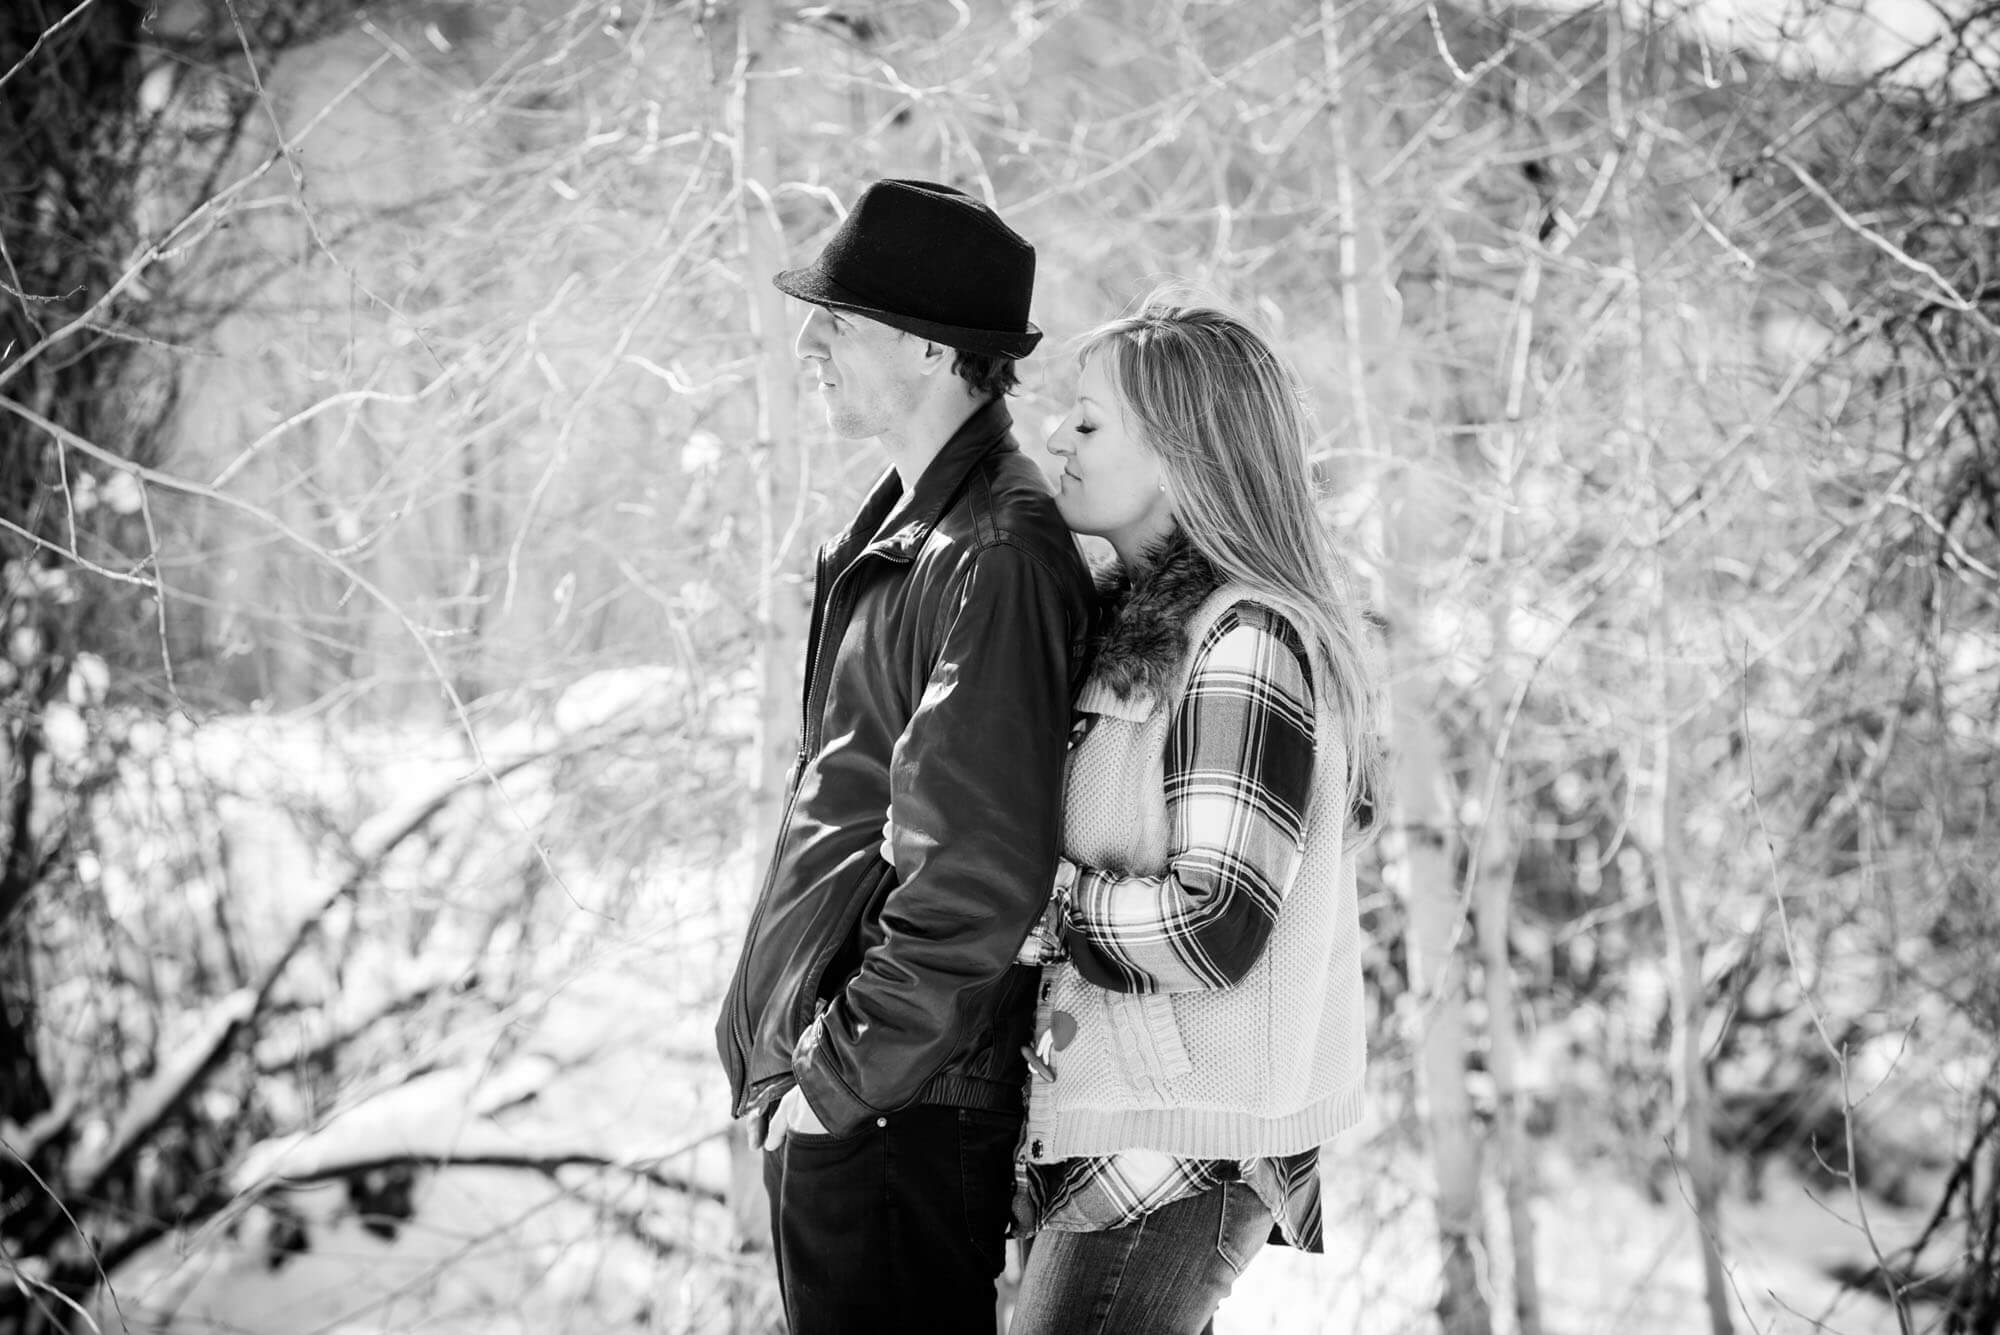 black and white photo of a couple in the snow taken by Aspen photographer Michele Cardamone